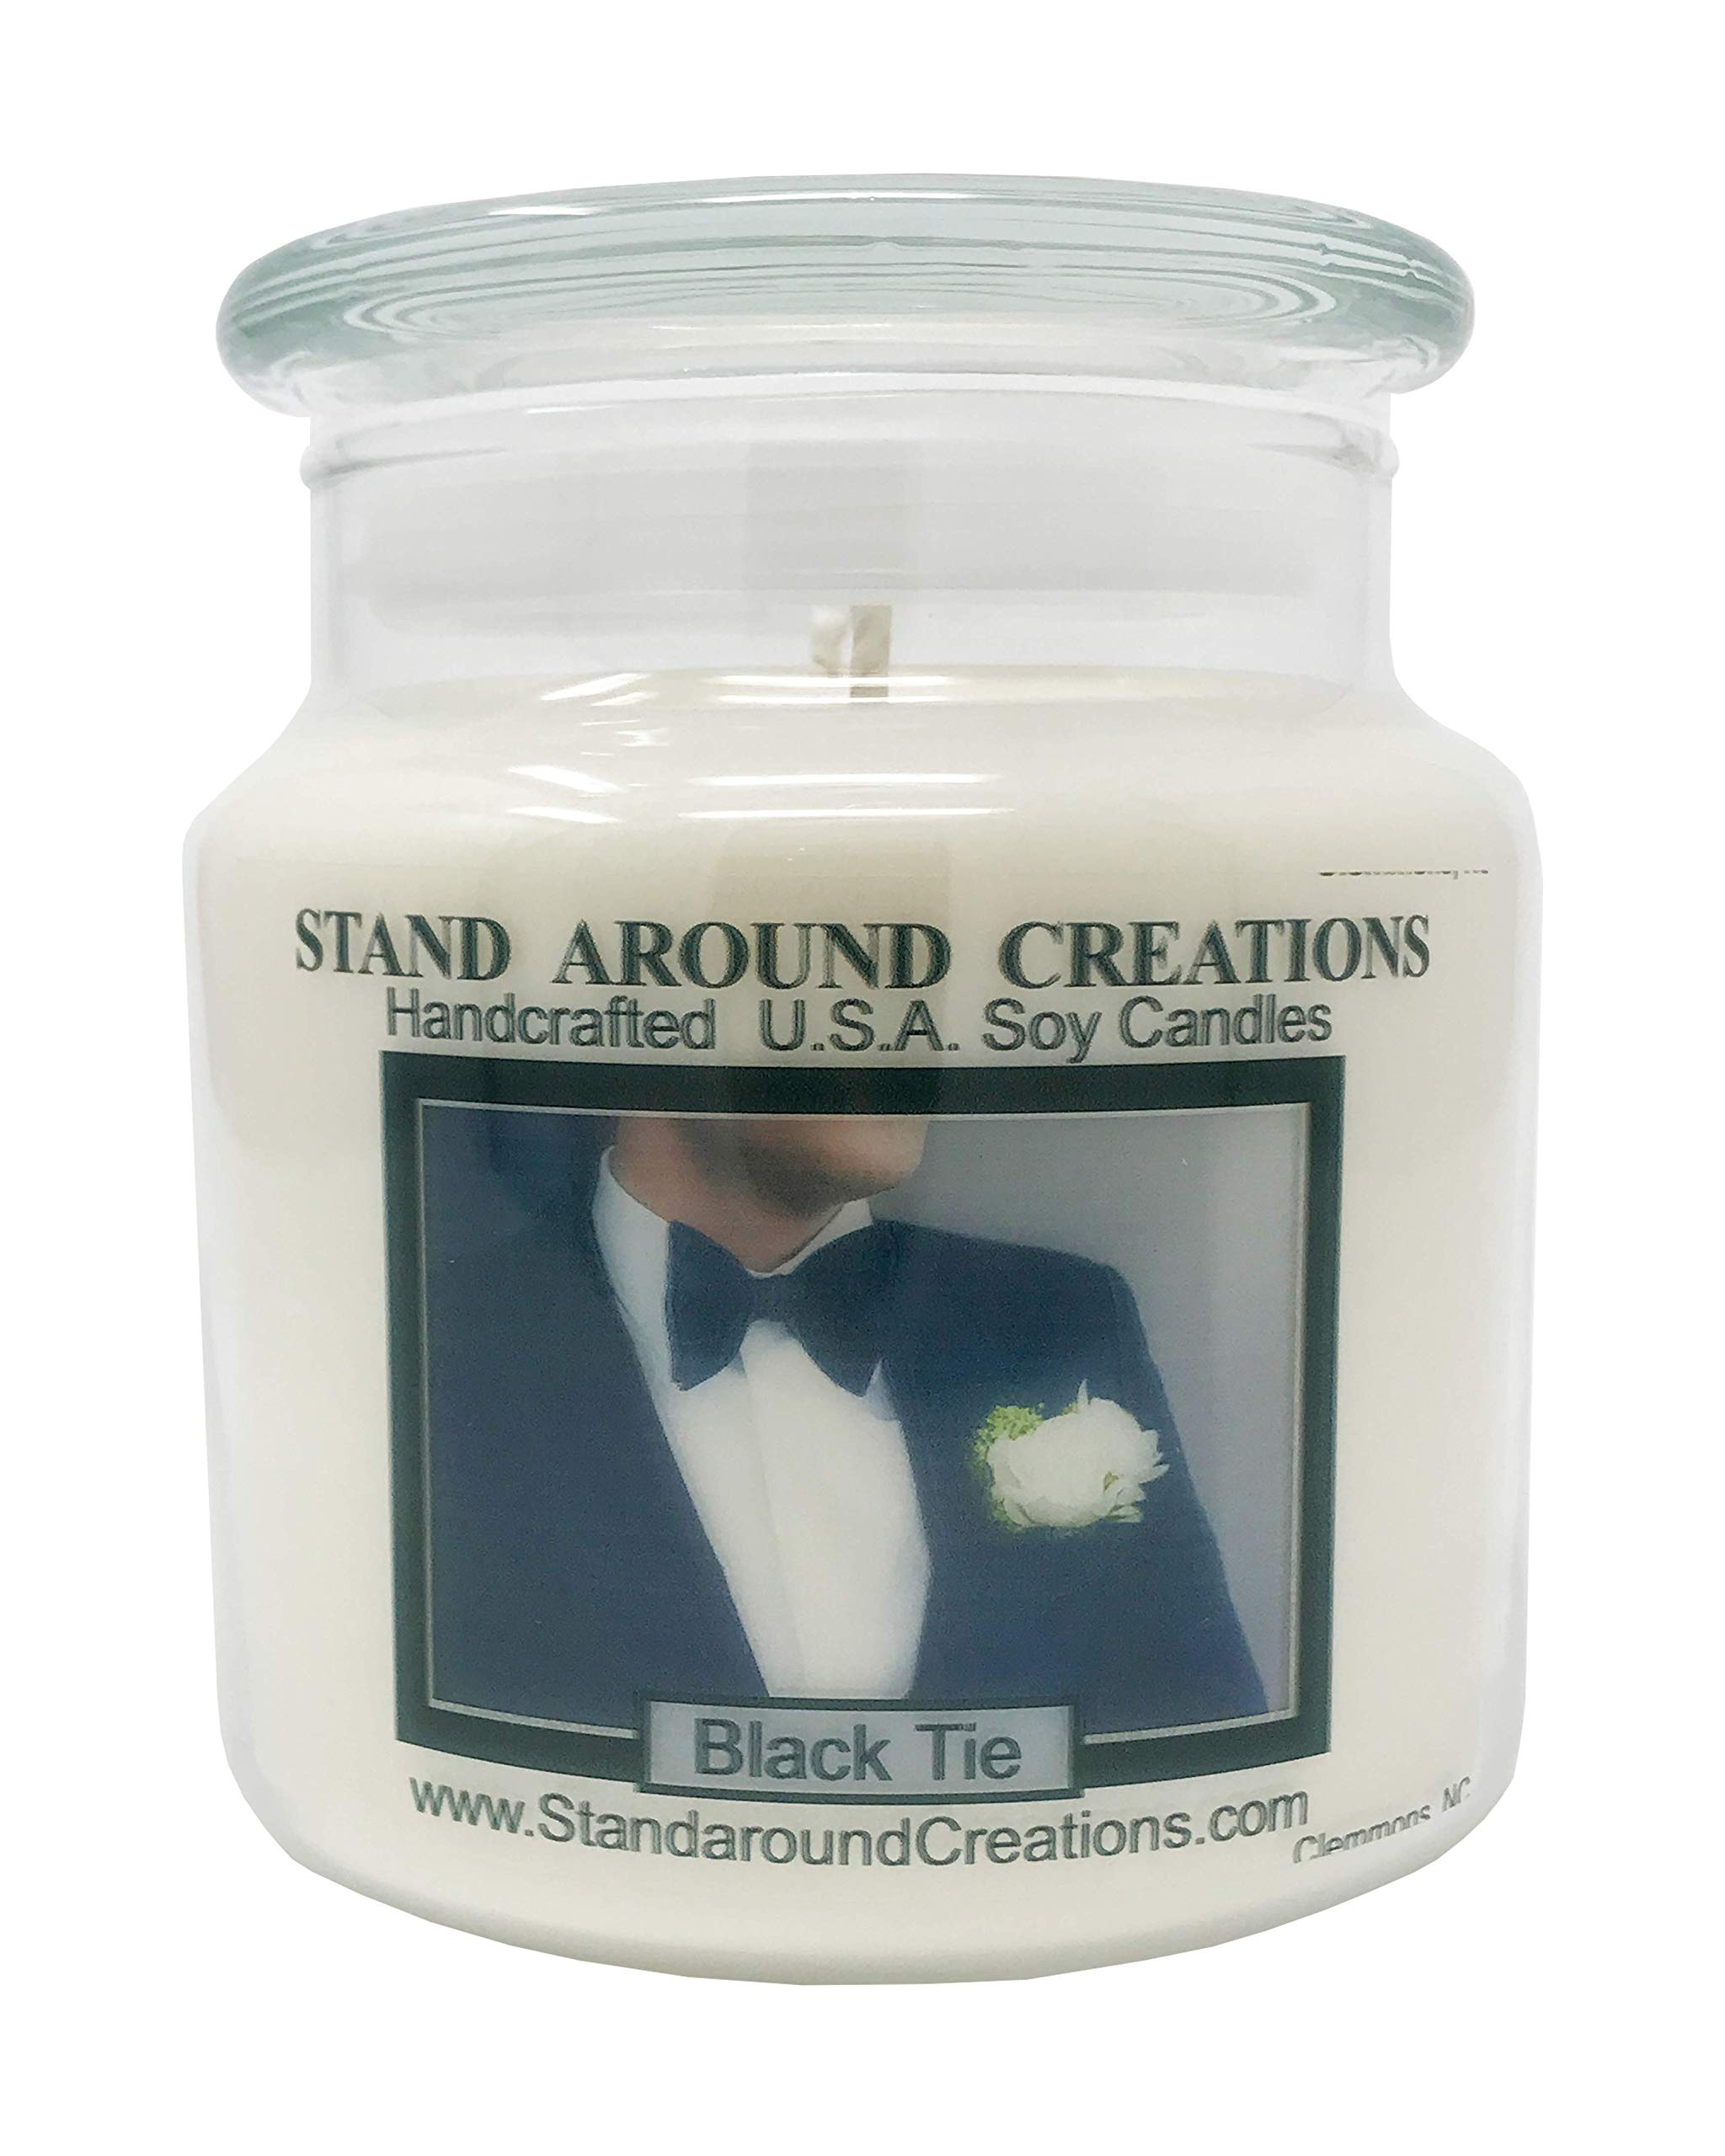 Premium 100% Soy Apothecary Candle - 16 oz. - Black Tie: Sophisticated notes of leather w/warm woods, patchouli, musk.